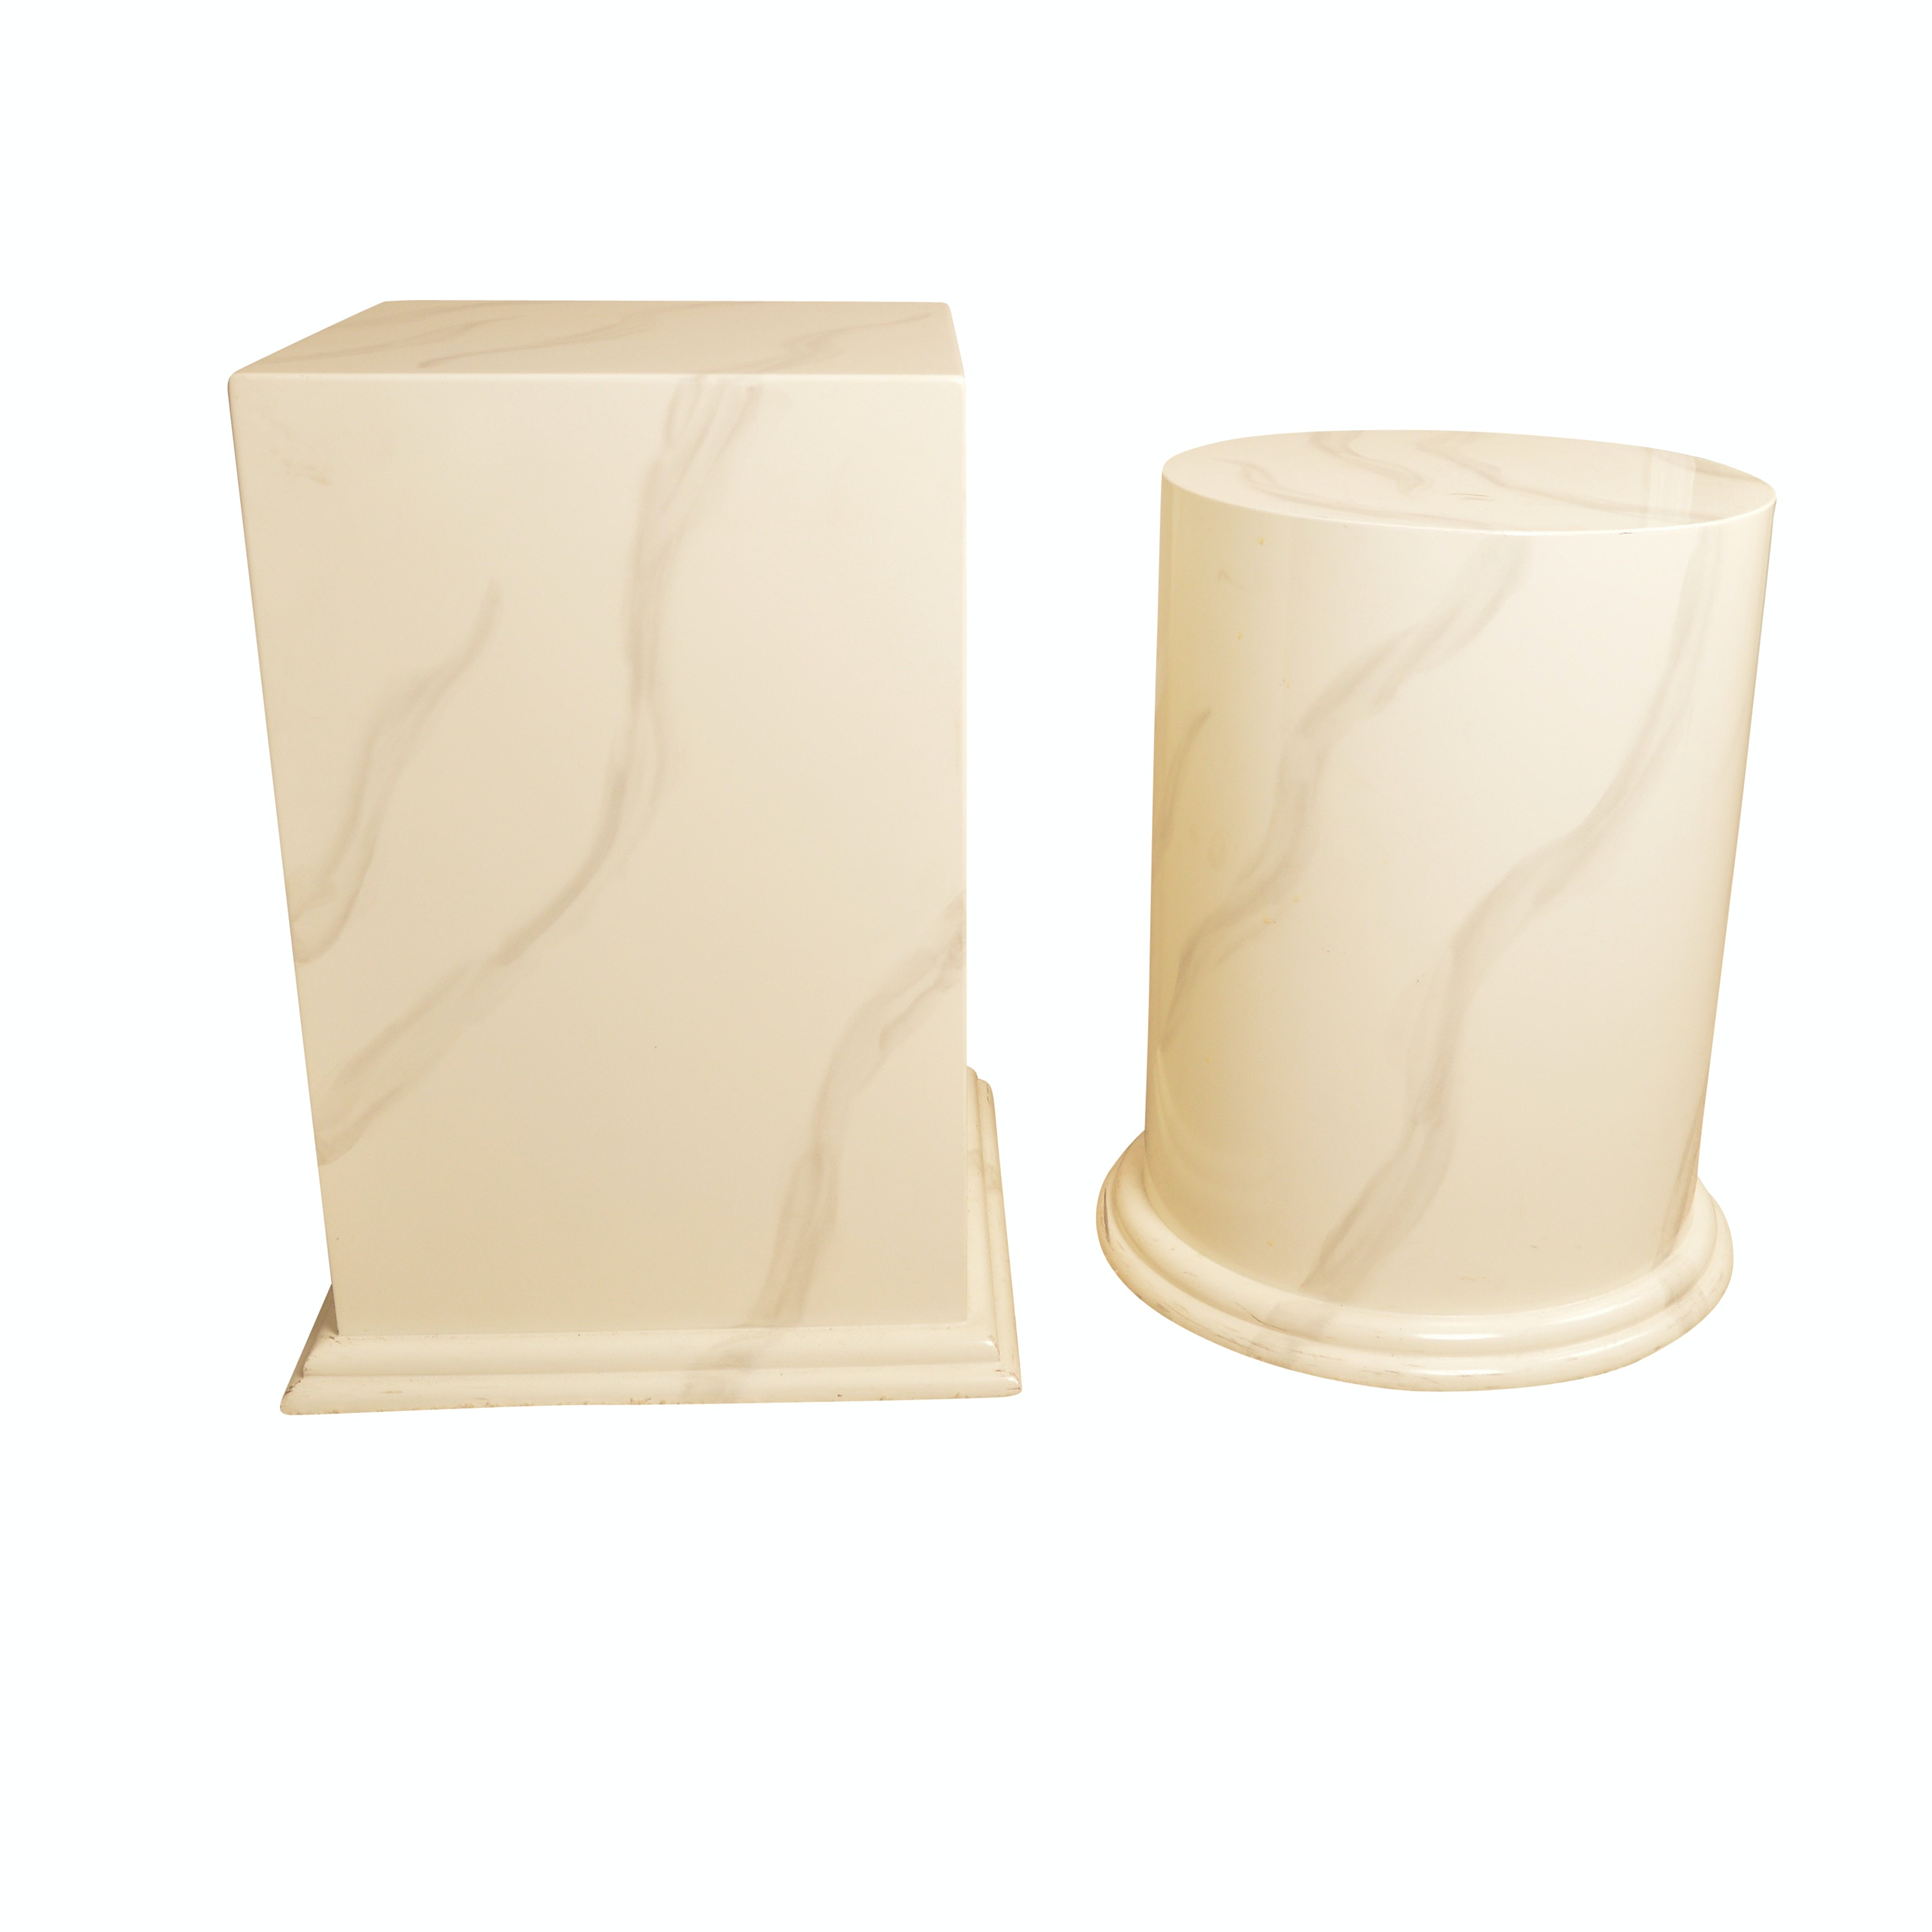 Pair of Faux Marble Pedestal Stands